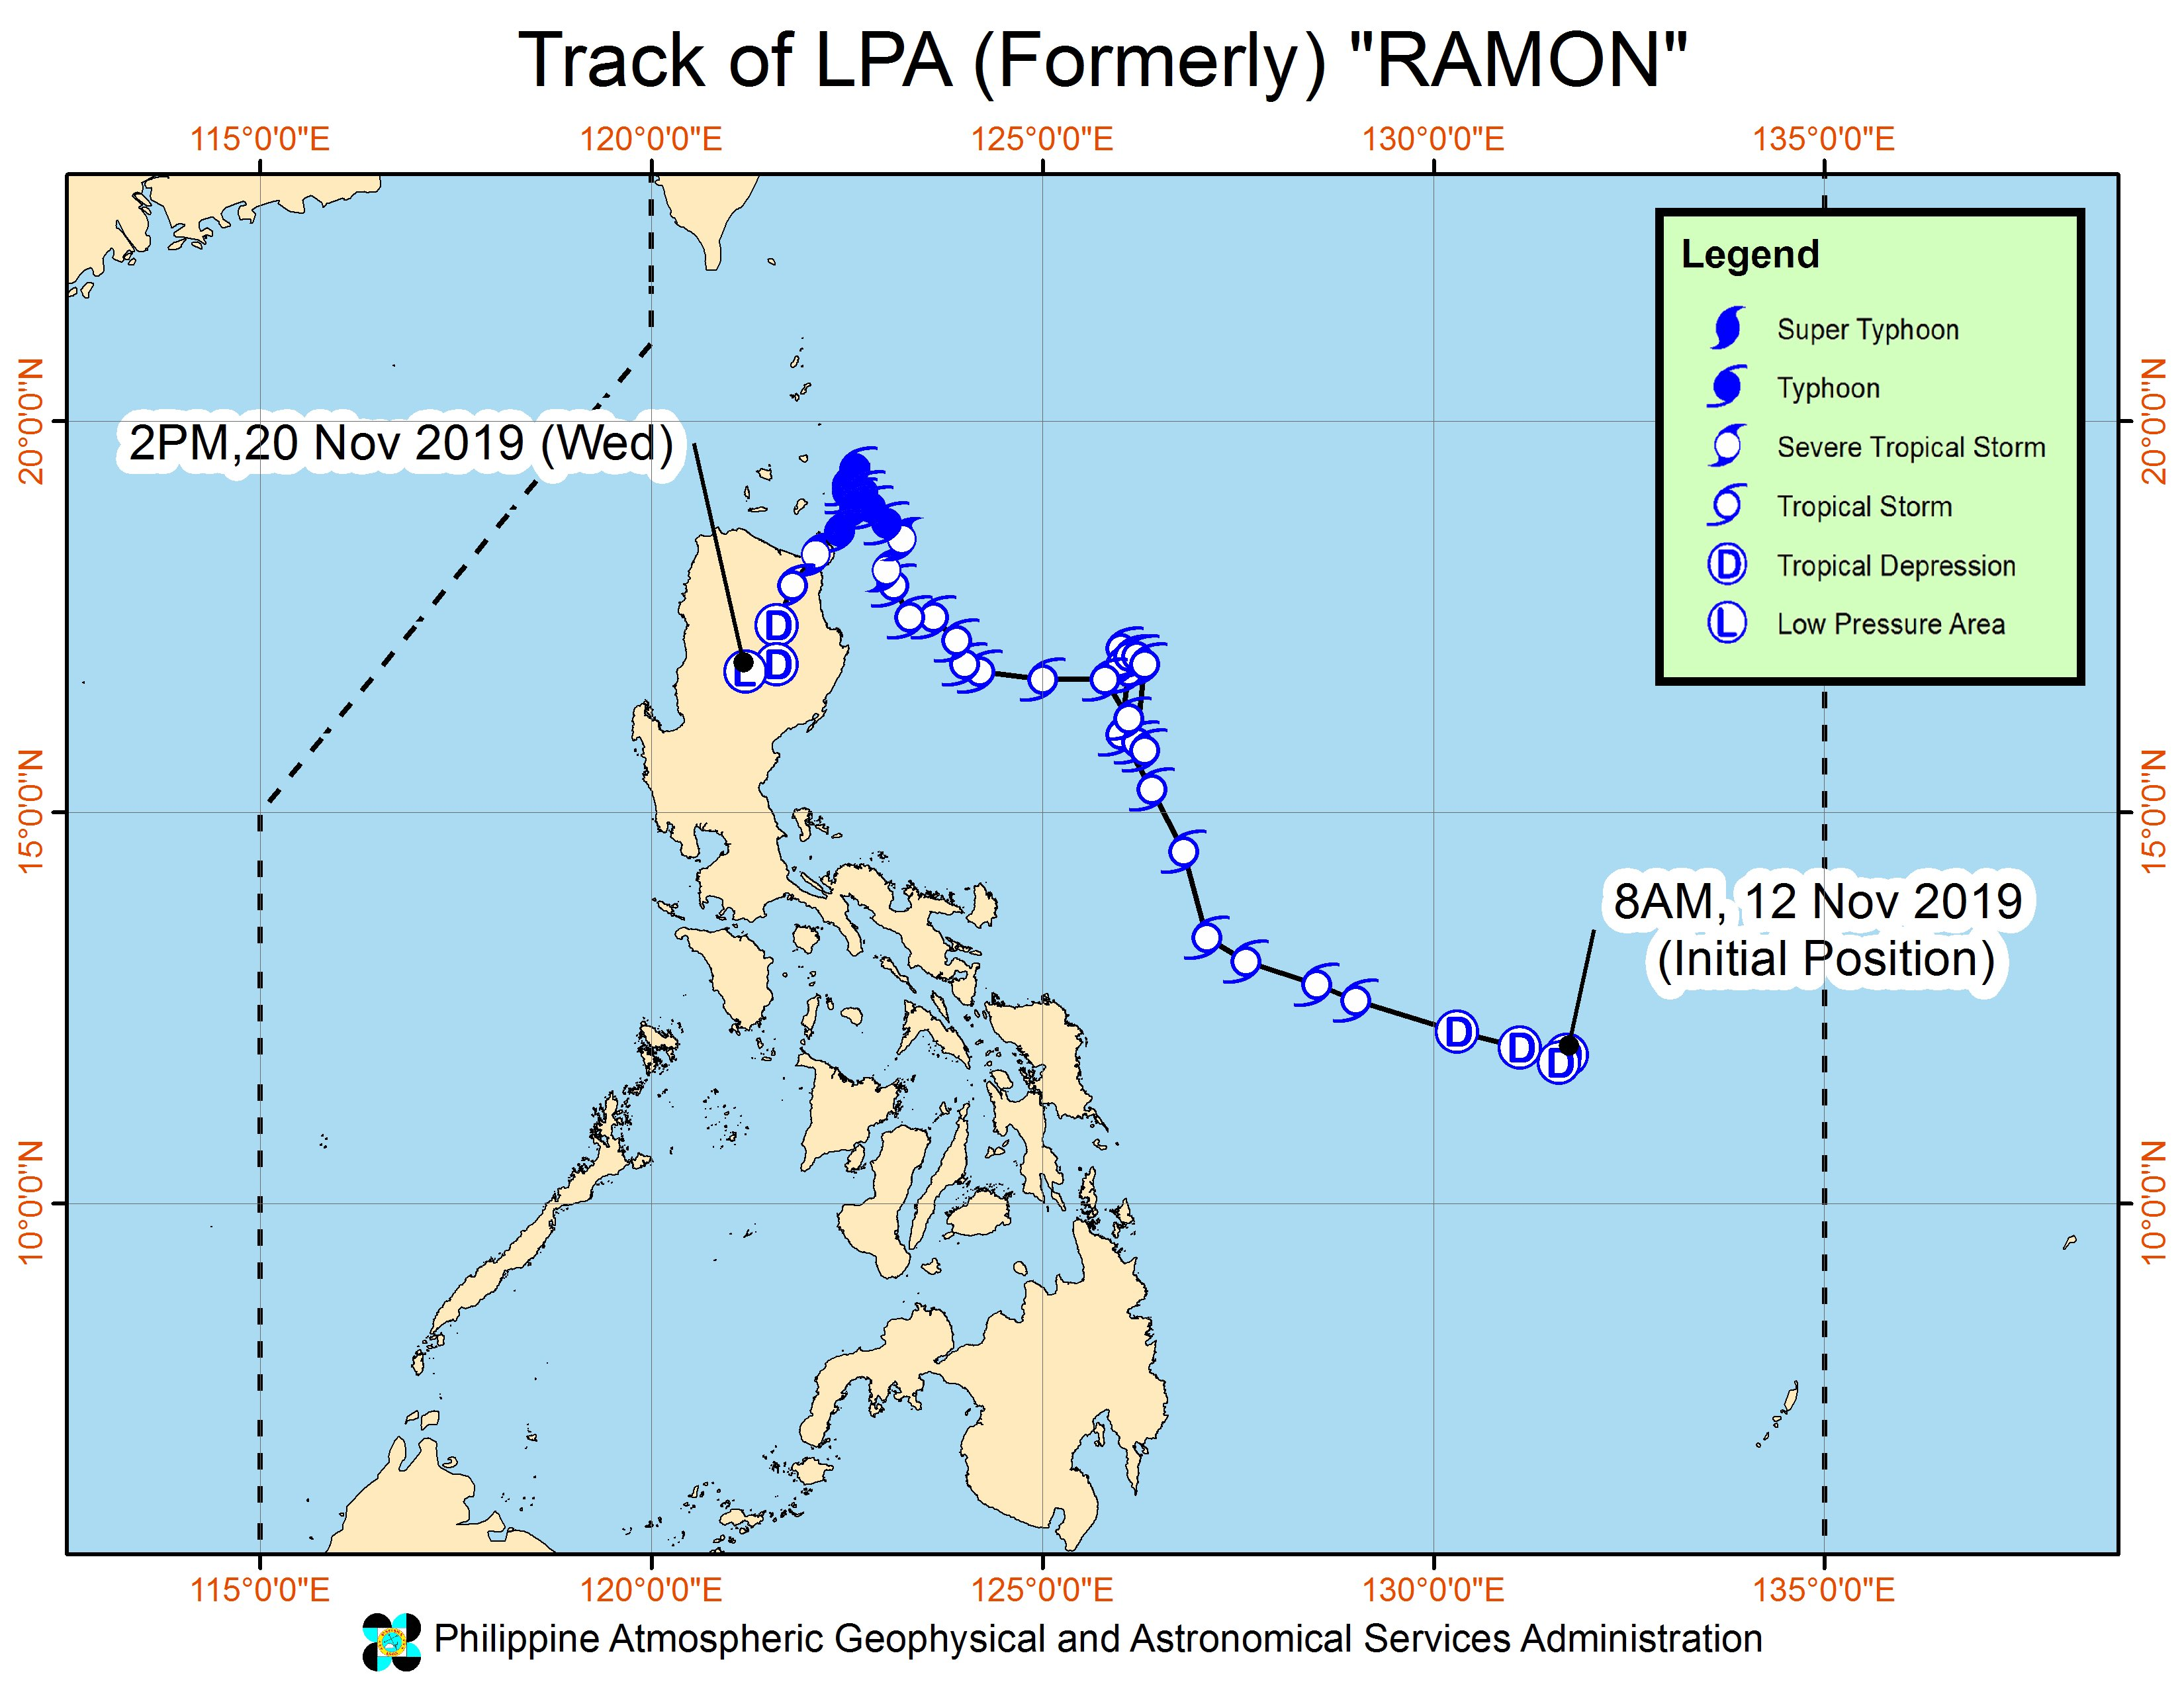 Forecast track of the low pressure area which used to be Tropical Depression Ramon (Kalmaegi) as of November 20, 2019, 5 pm. Image from PAGASA